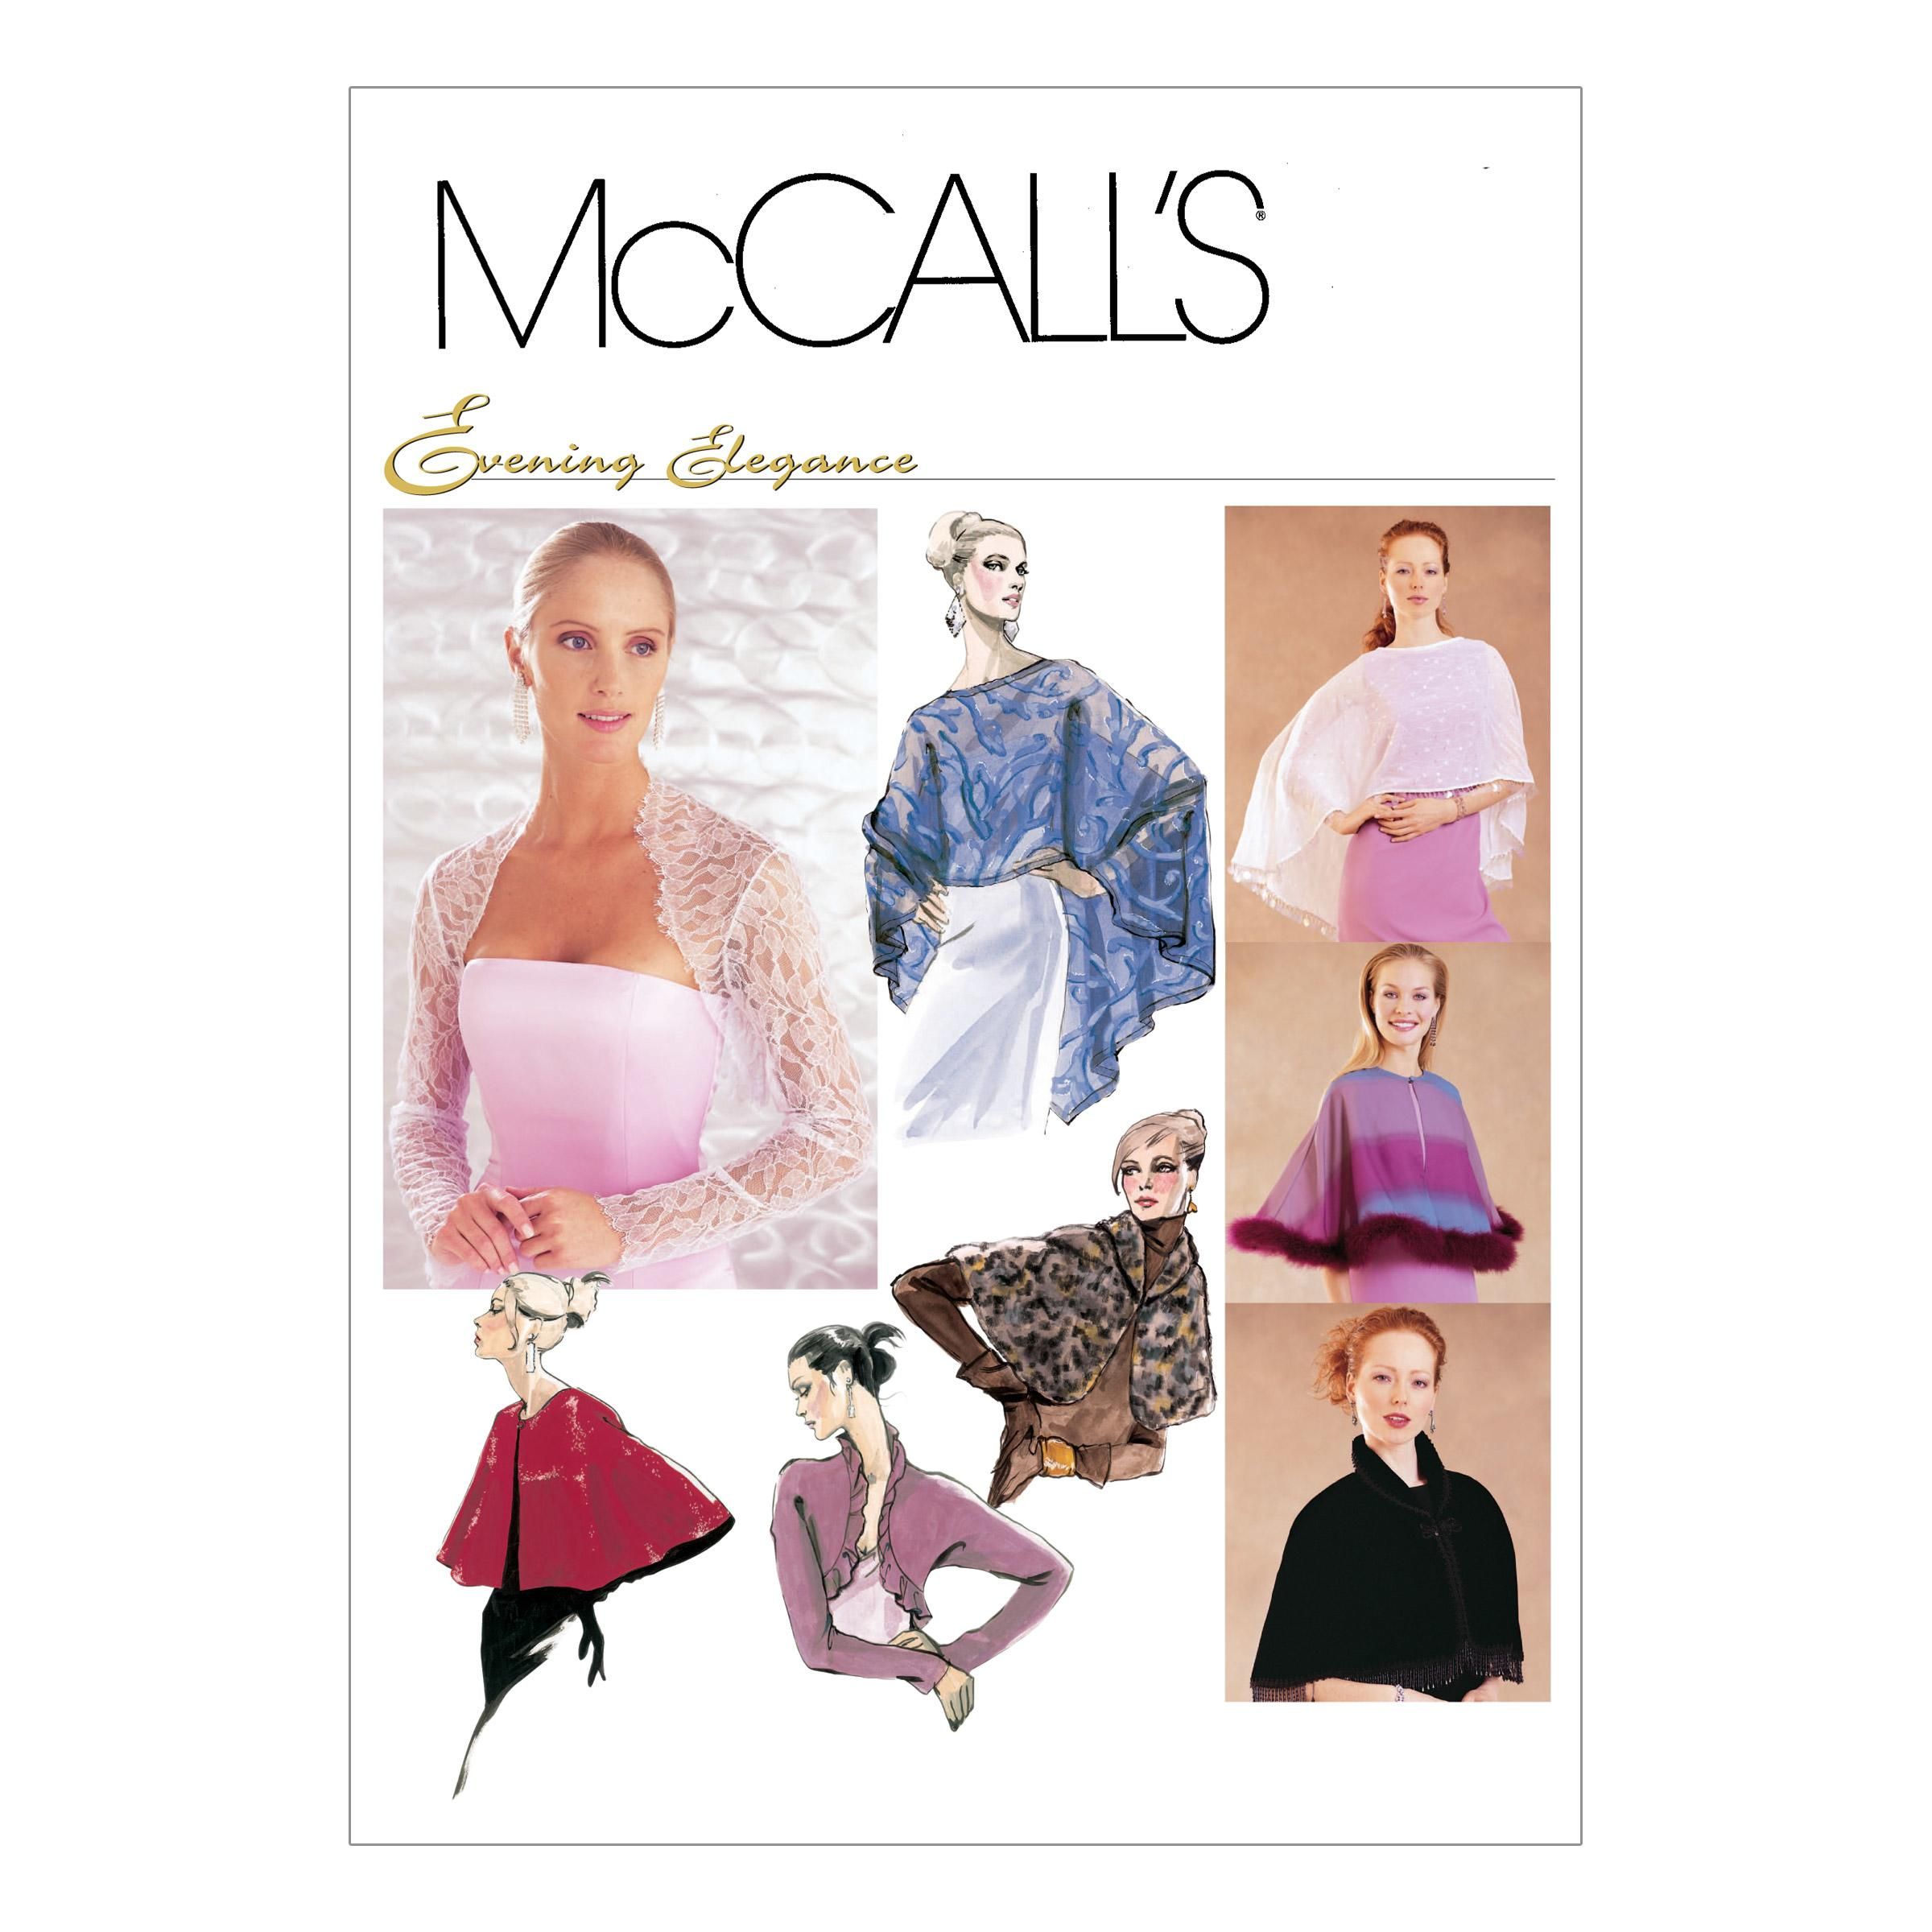 McCalls M3033 Accessories, Evening/Prom, Jackets/Vests, Misses, Misses/Women/Girls, Prom